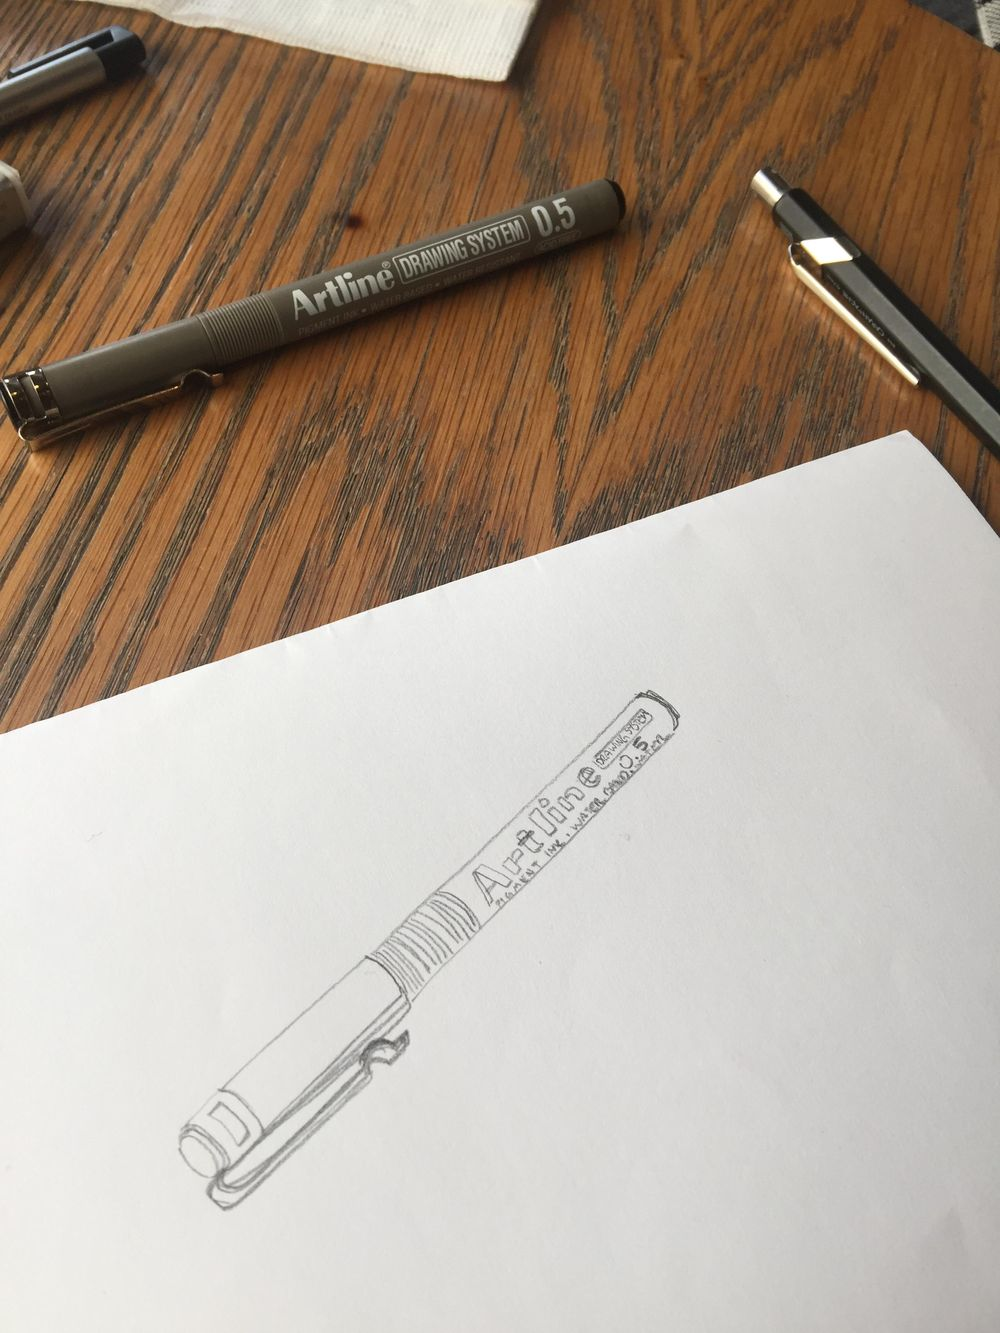 Drawing My Tools - image 2 - student project